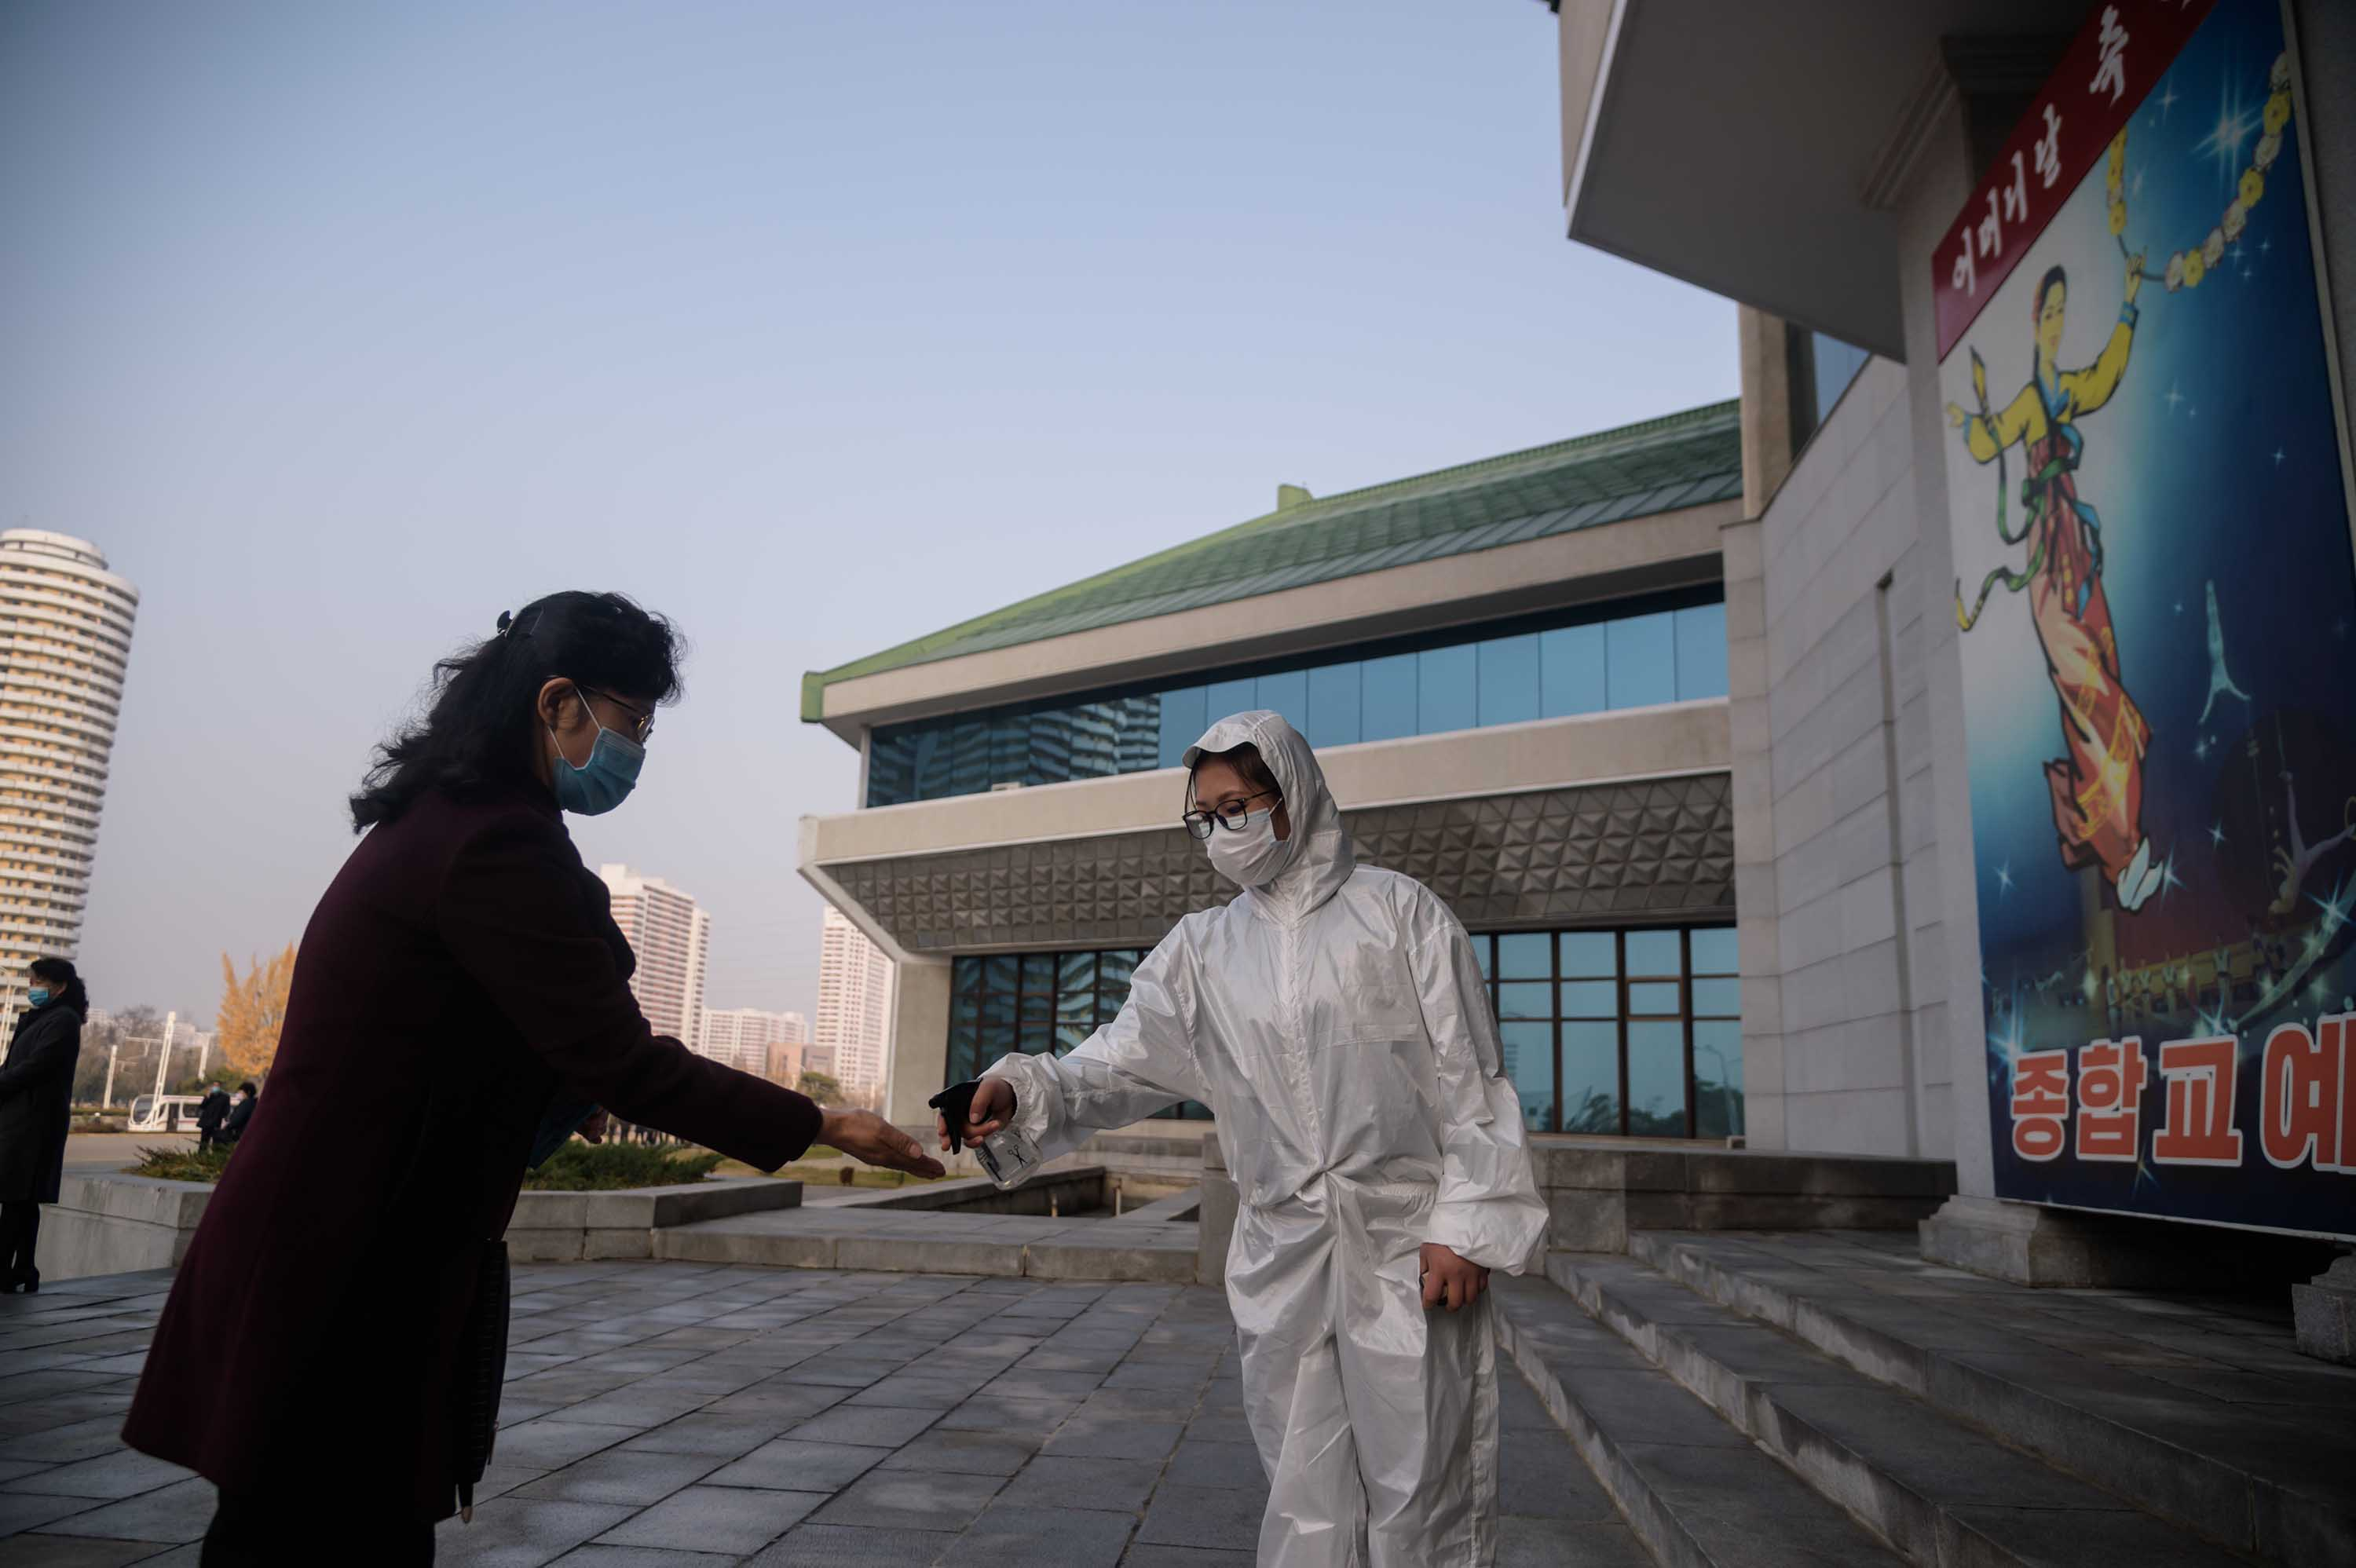 As part of preventative measures against coronavirus, a worker takes the temperature of an attendee ahead of a performance by North Korea's National Acrobatic Troupe in Pyongyang, North Korea, on November 16.